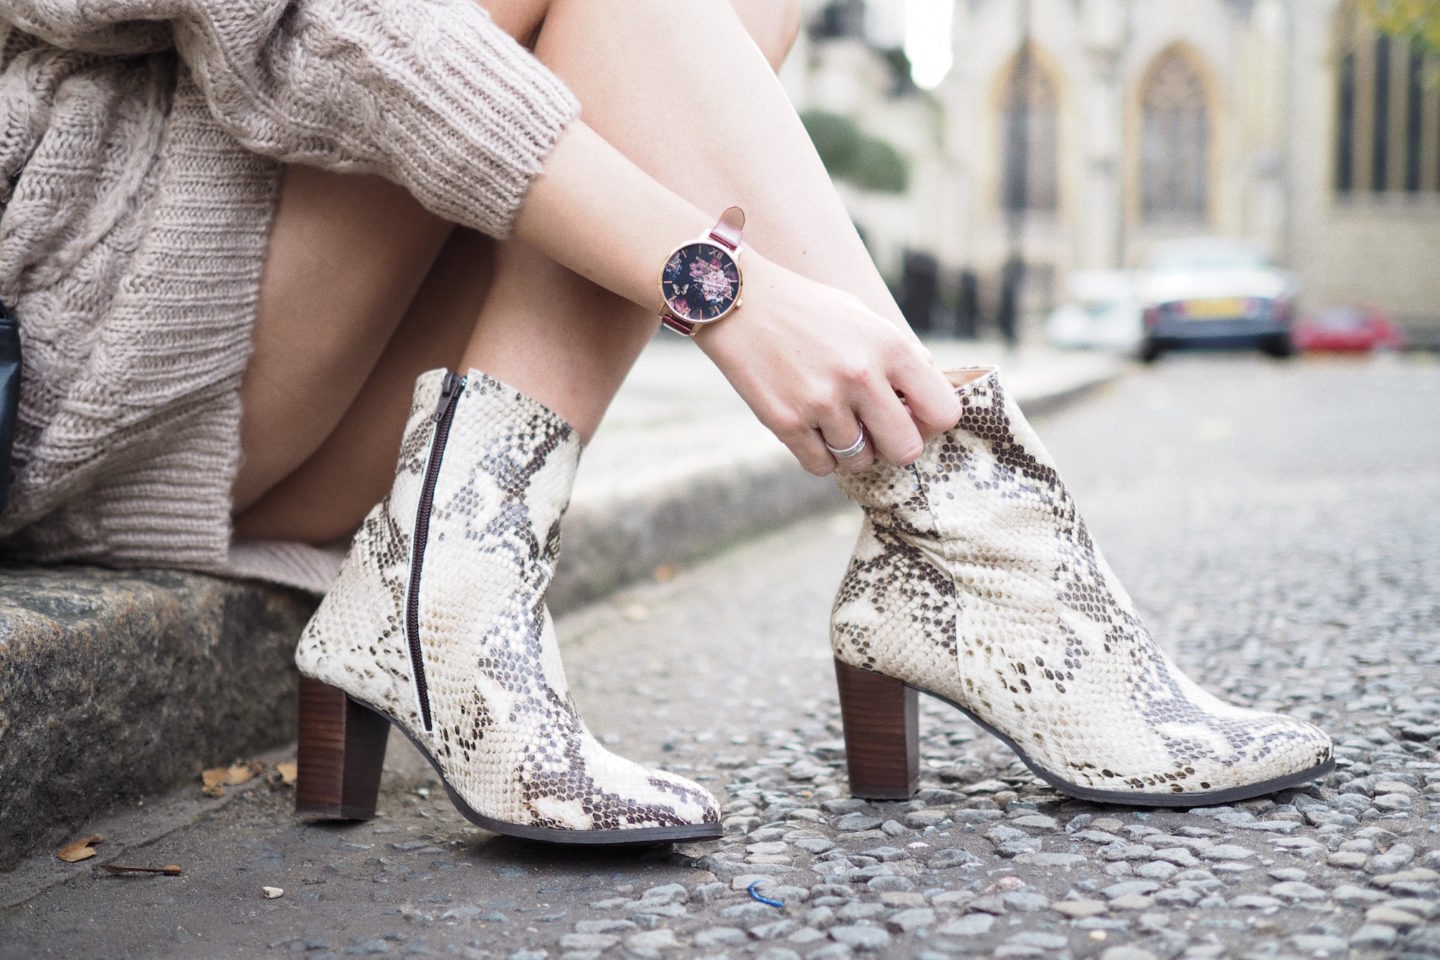 olivia-burton-london-watch-it-shoes-street-style